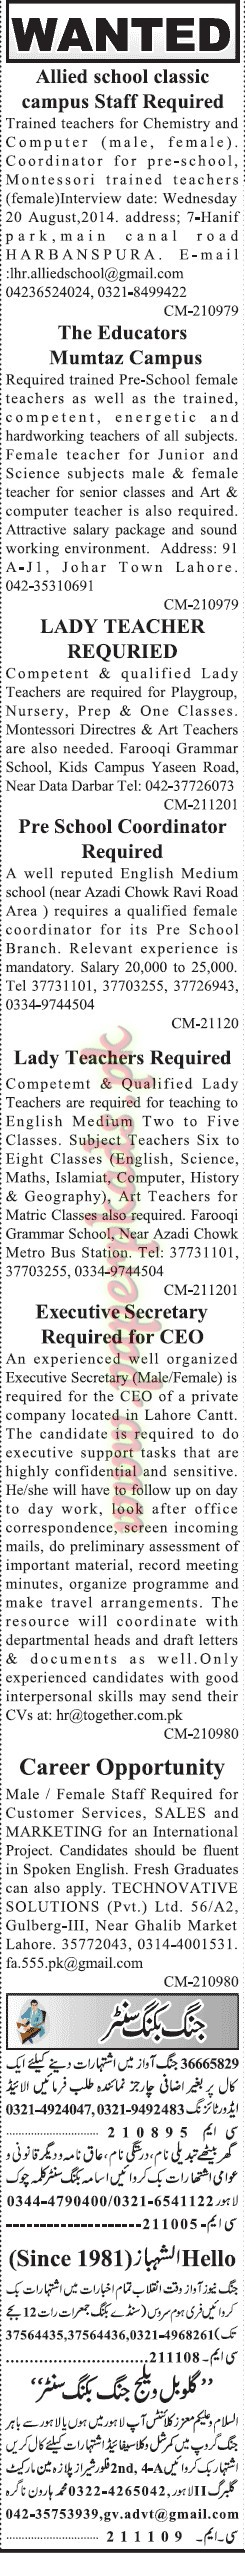 Classifieds Ads Part 1 - Jang jobs 17 August 2014